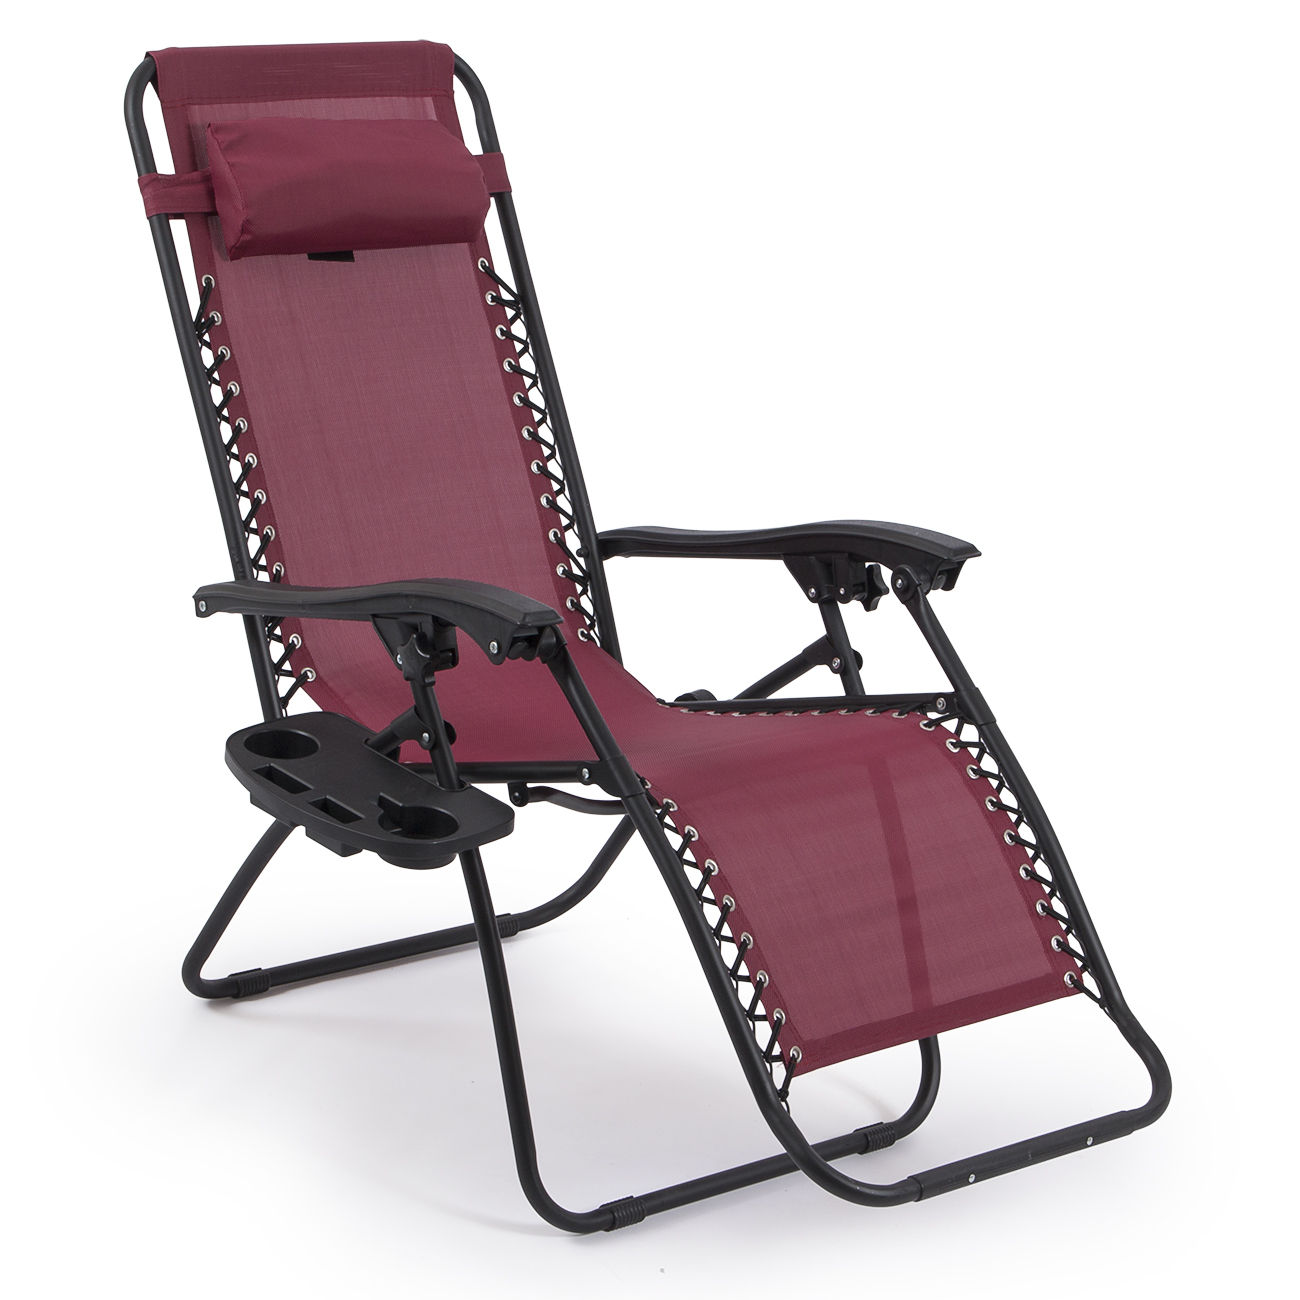 Folding Lounge Chairs 2 Folding Zero Gravity Reclining Lounge Chairs 43utility